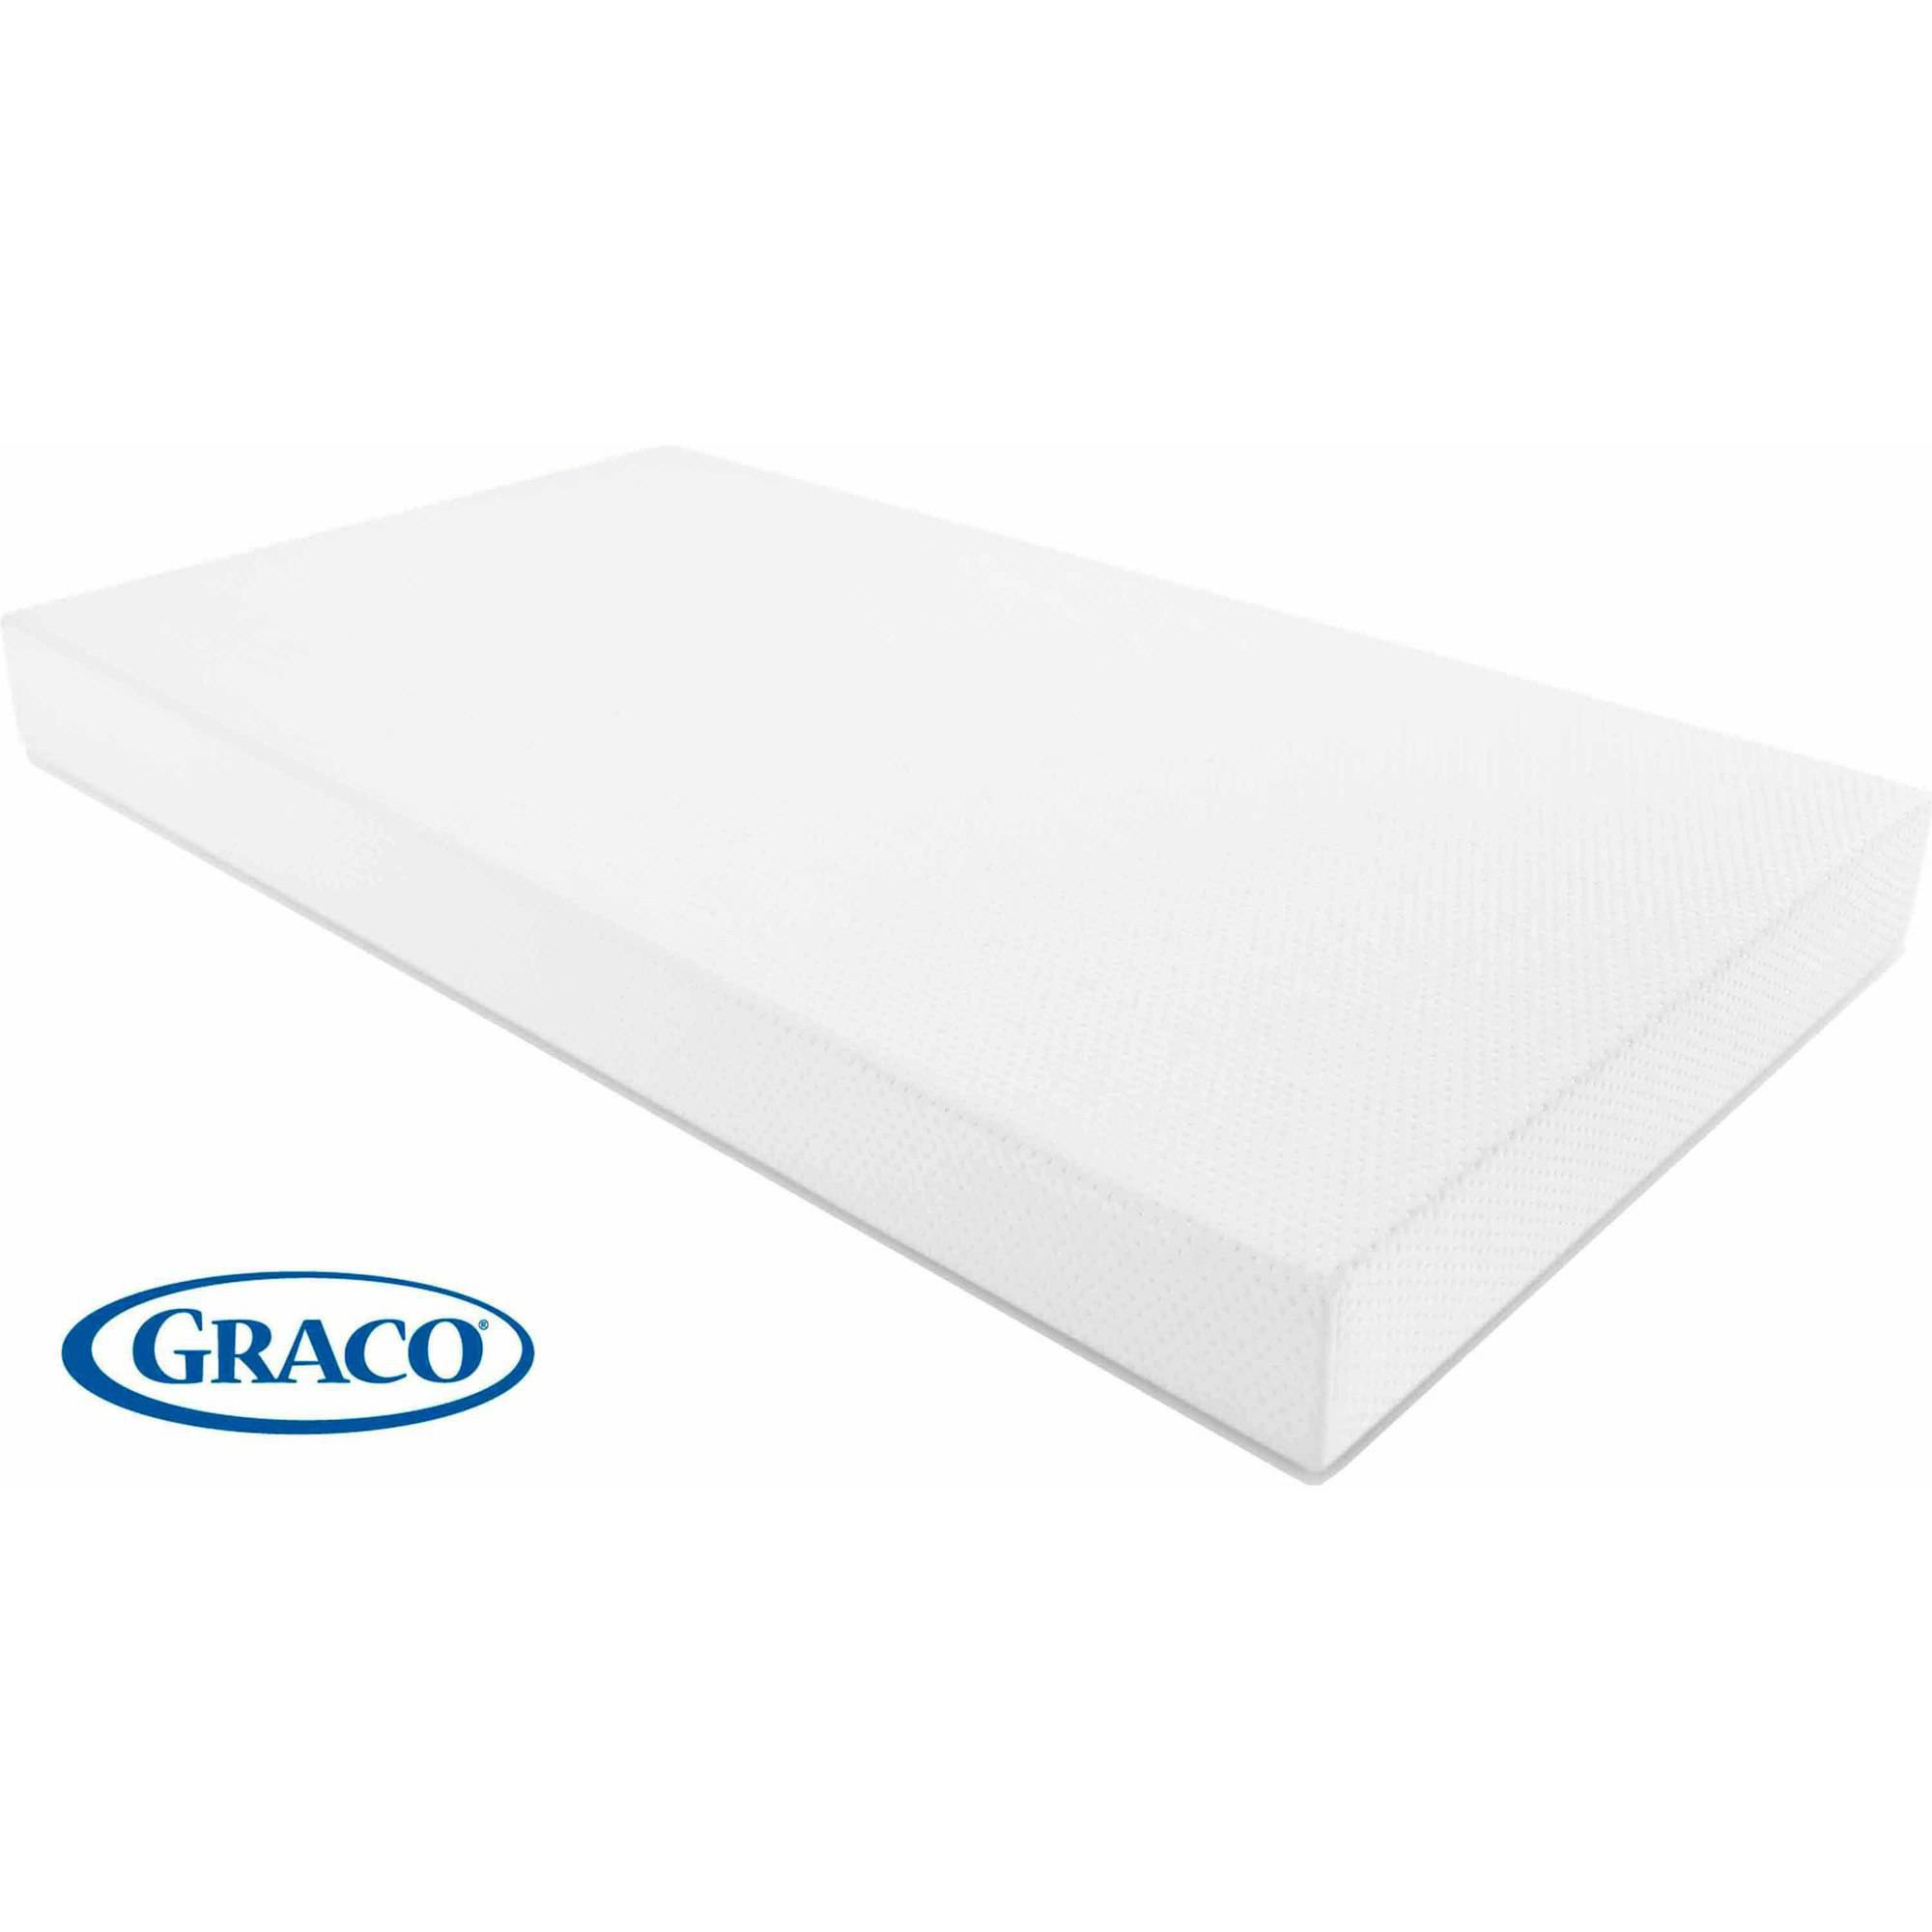 Graco Premium Crib And Toddler Bed Mattress Foam